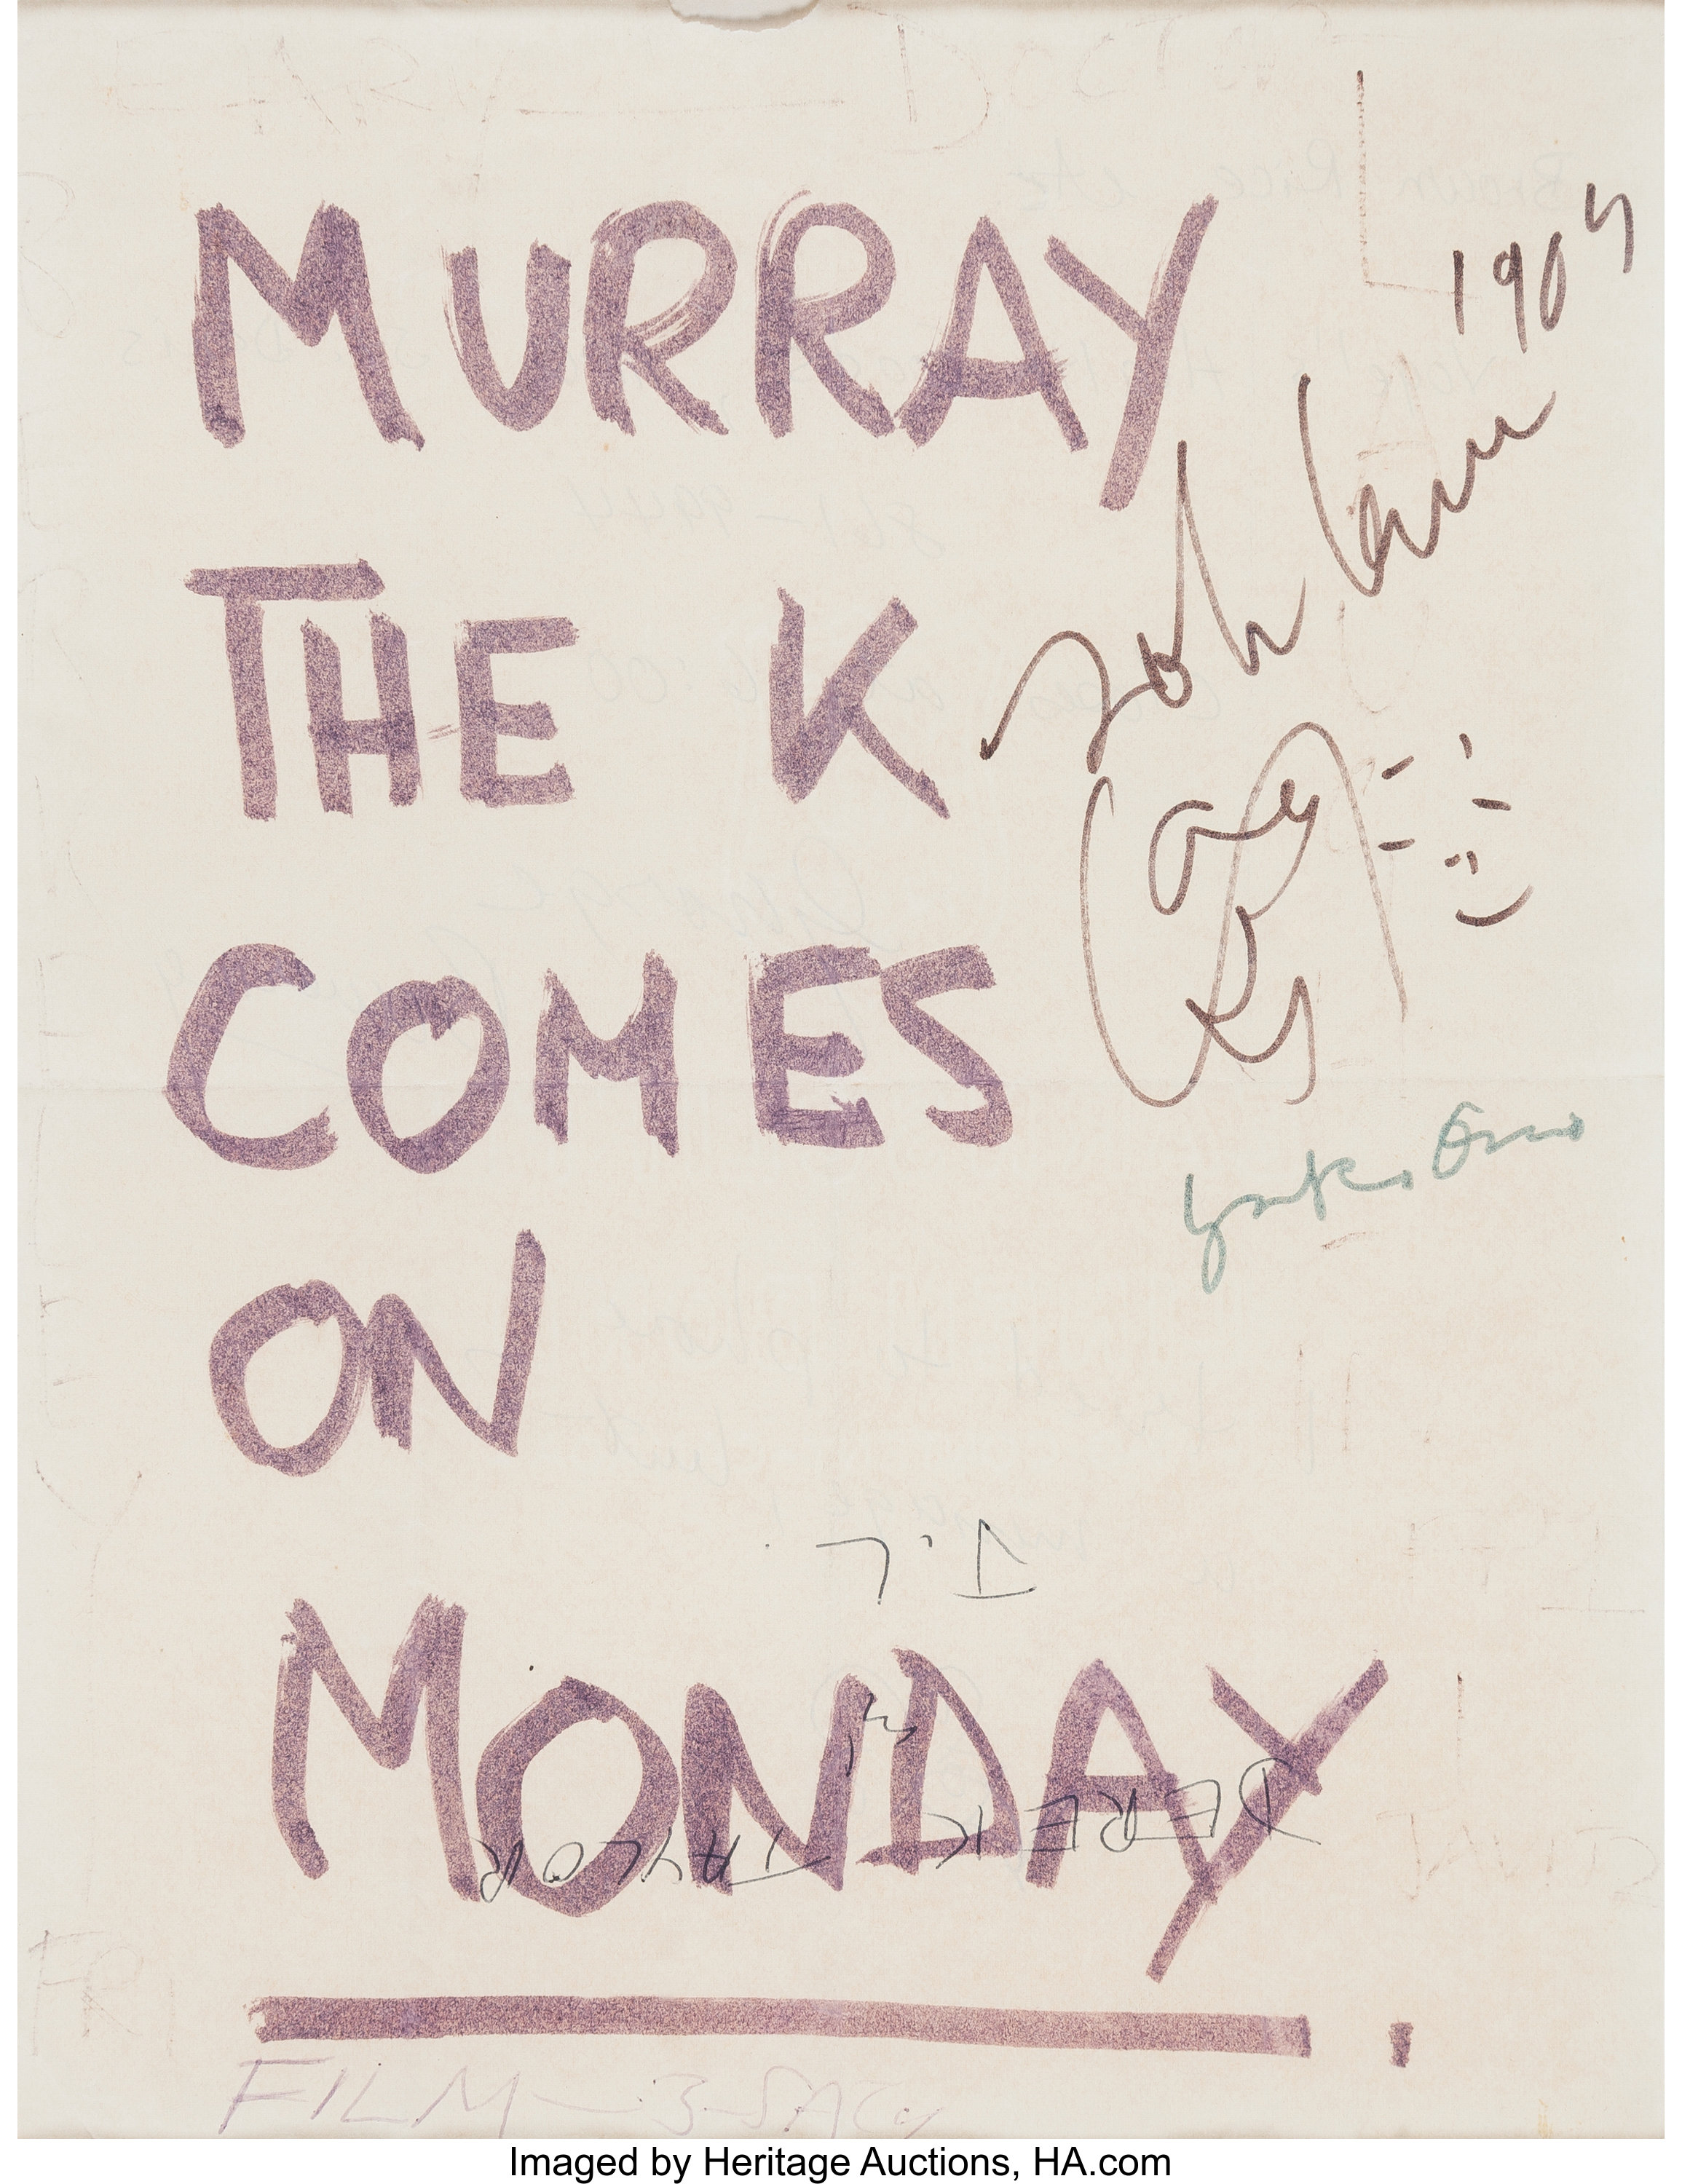 Beatles A Sign From The Montreal Bed In For Peace Signed By John Lot 90180 Heritage Auctions